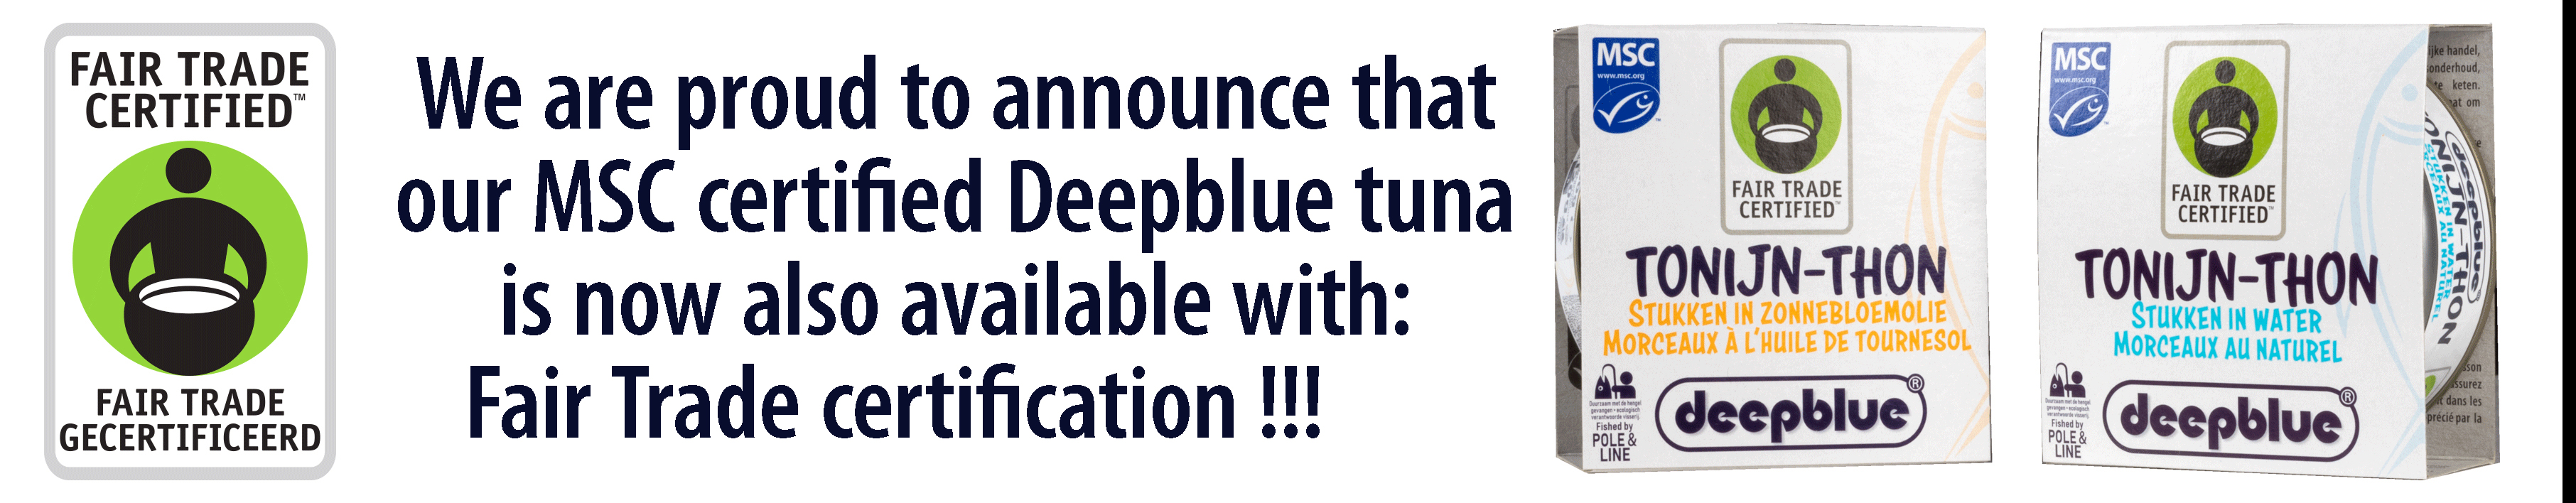 New fairtrade MSC Tuna in our product Range at Gloe & Zeitz BV